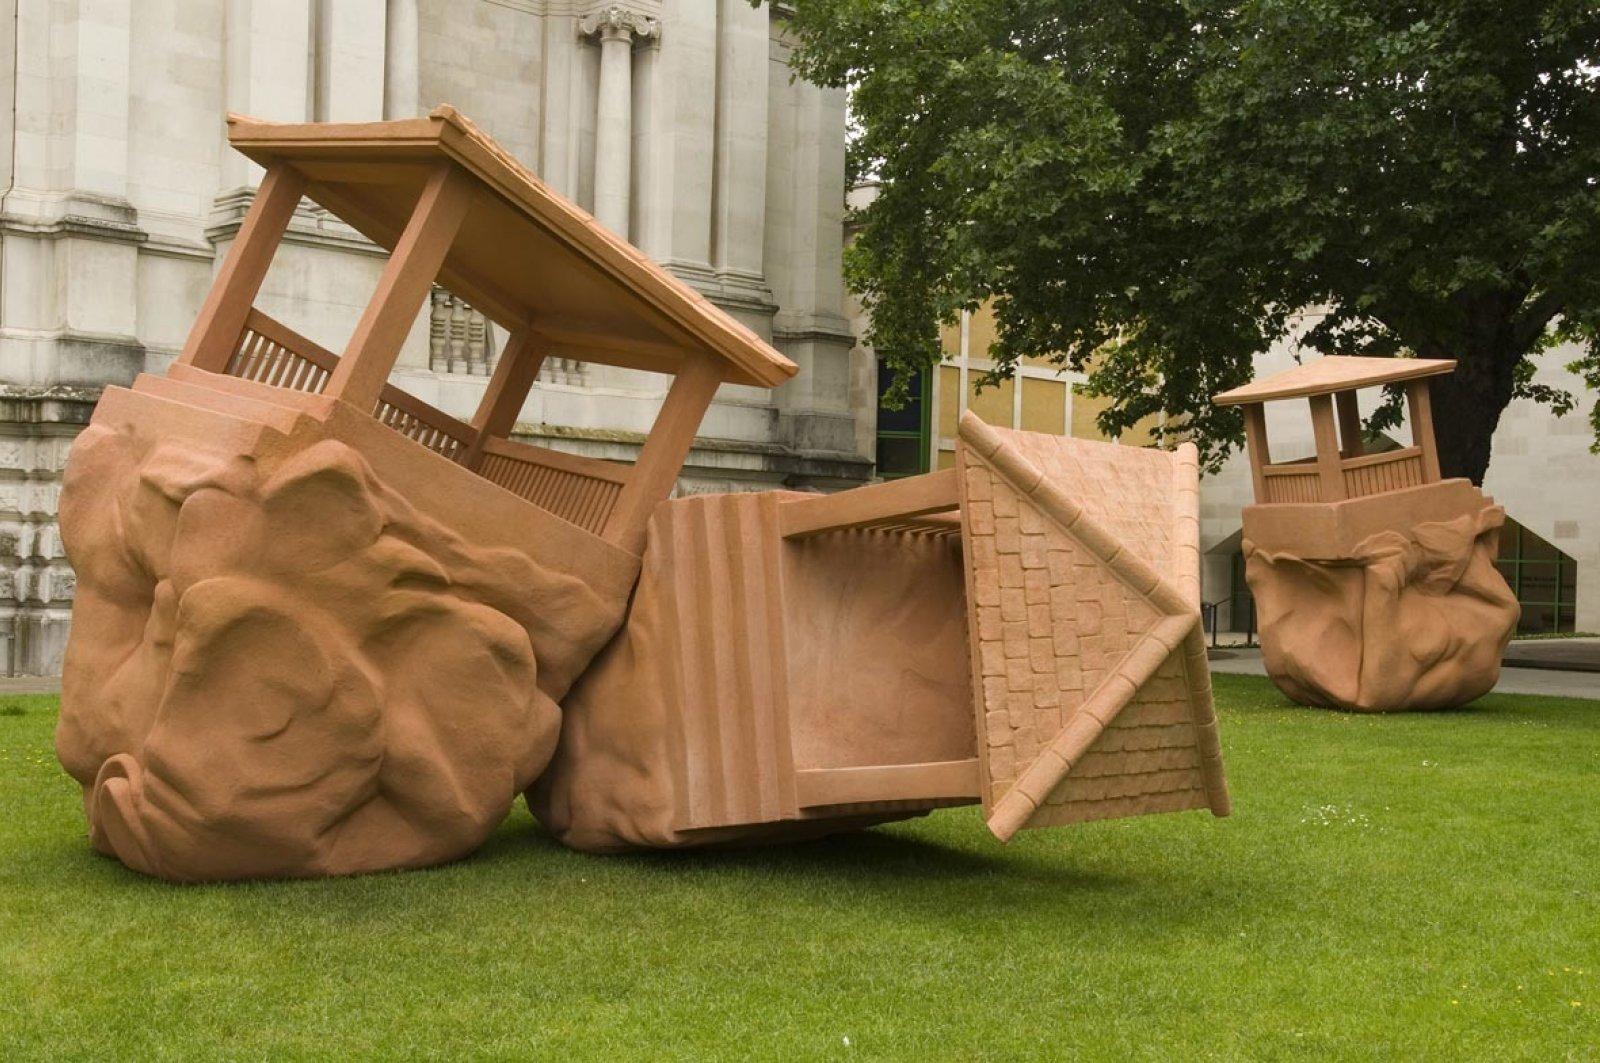 Christina Mackie, The Large Huts, 2007, steel, polystyrene, acrylic cement render, dimensions variable. Installation view, Art Now Sculpture Court, Tate Britain, London, UK by Christina Mackie